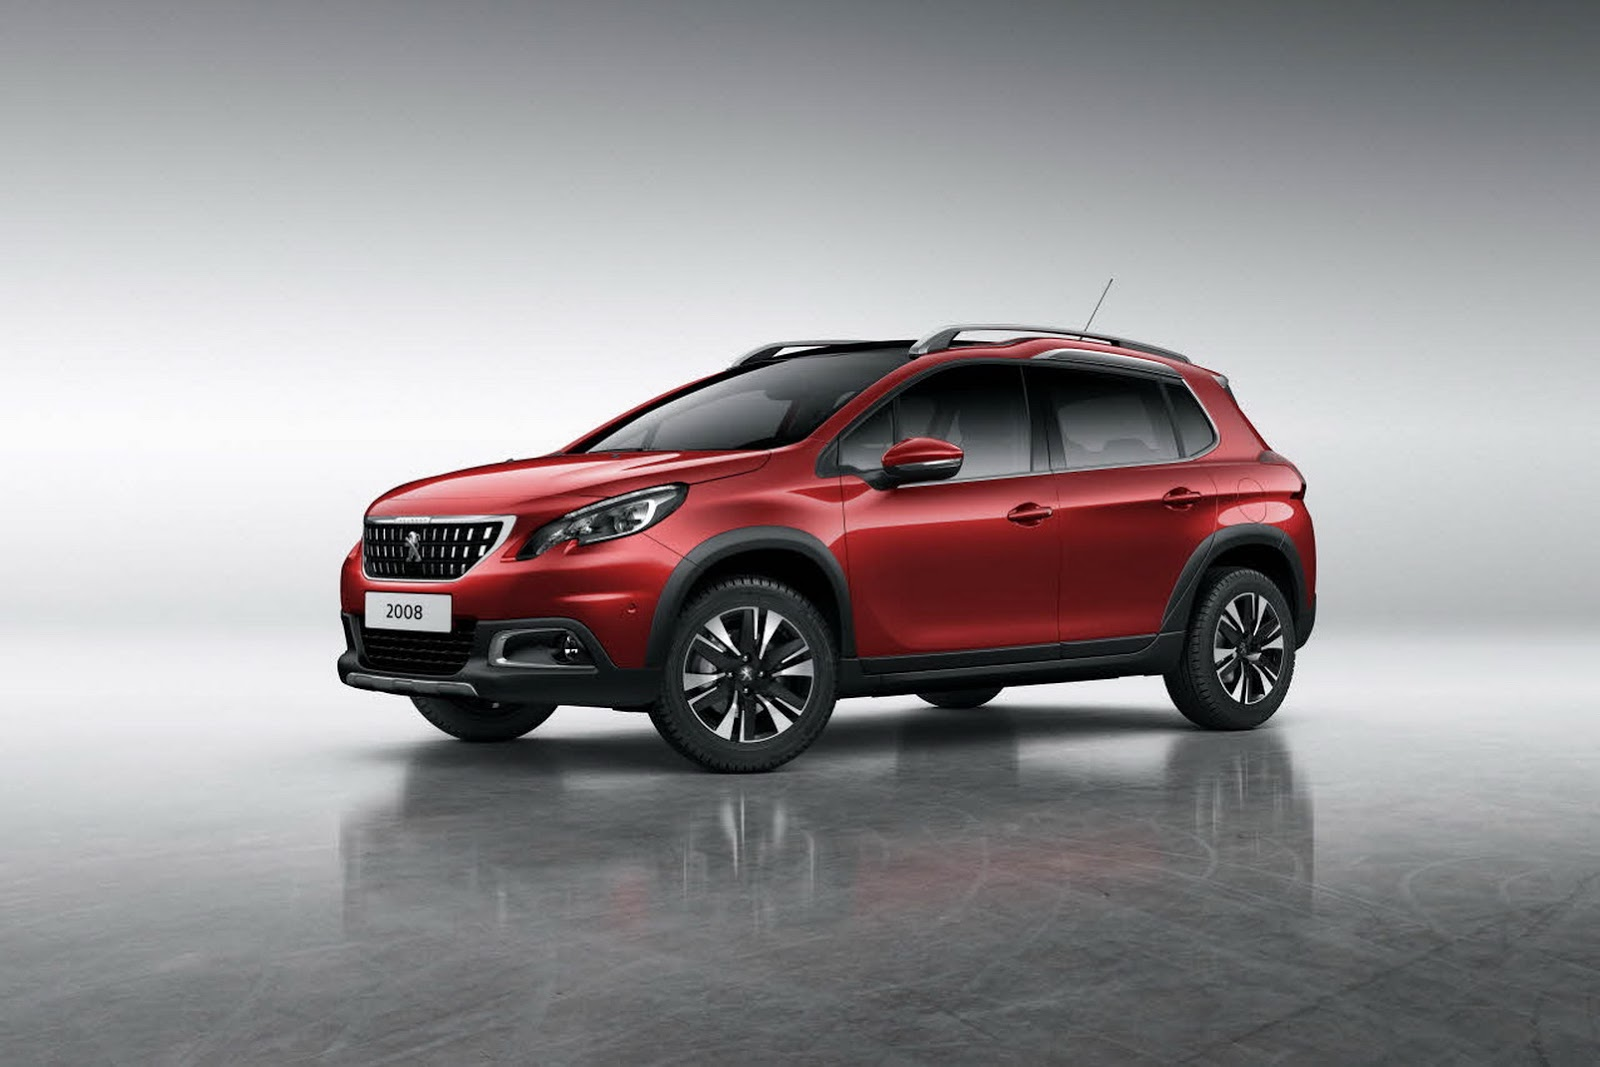 Peugeot Publishes Real World Fuel Economy Figures For 2008